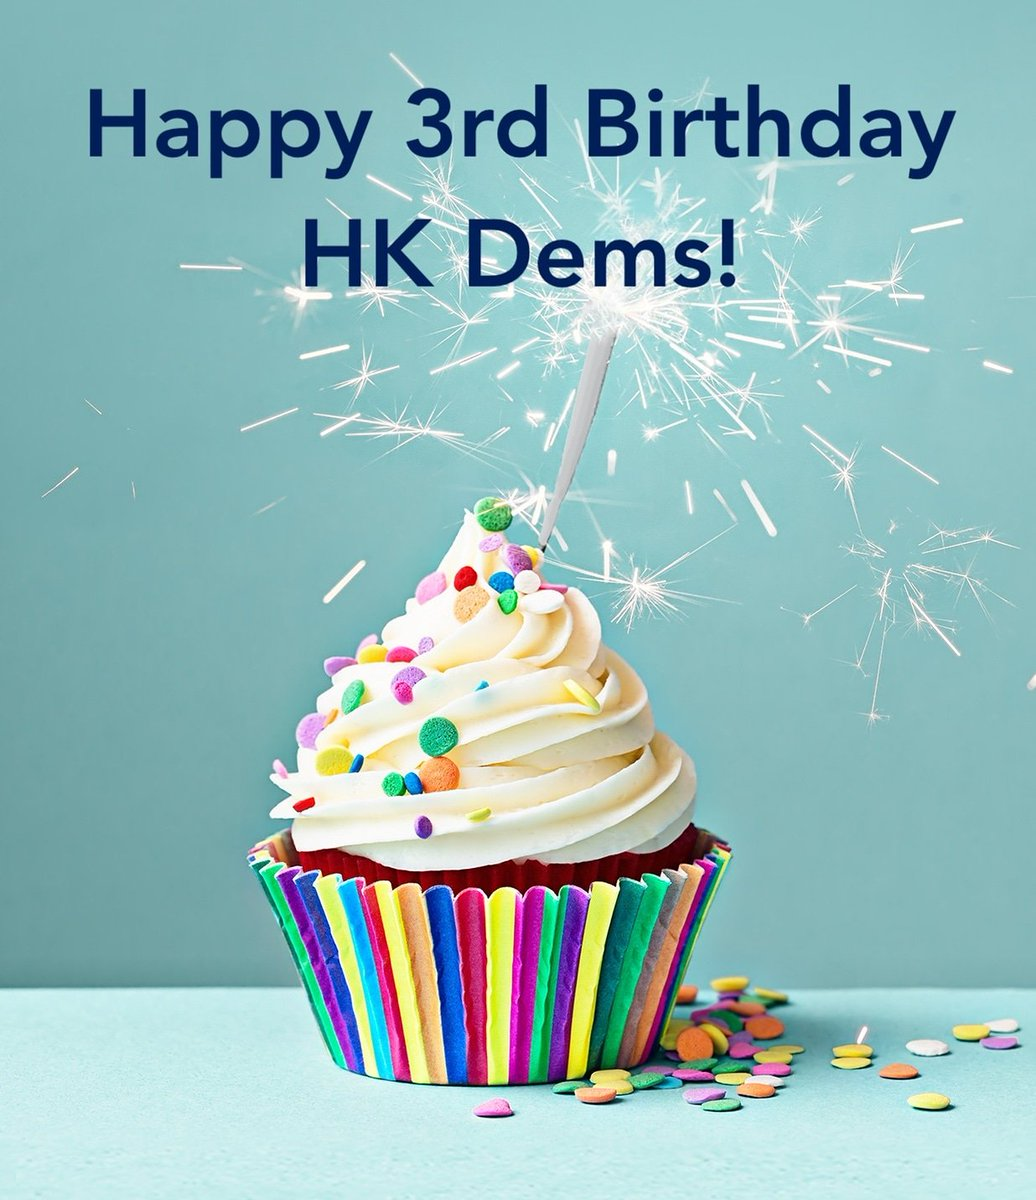 Happy birthday Hell's Kitchen Democrats! Share your favorite moment from the last 3 years in the comments below.